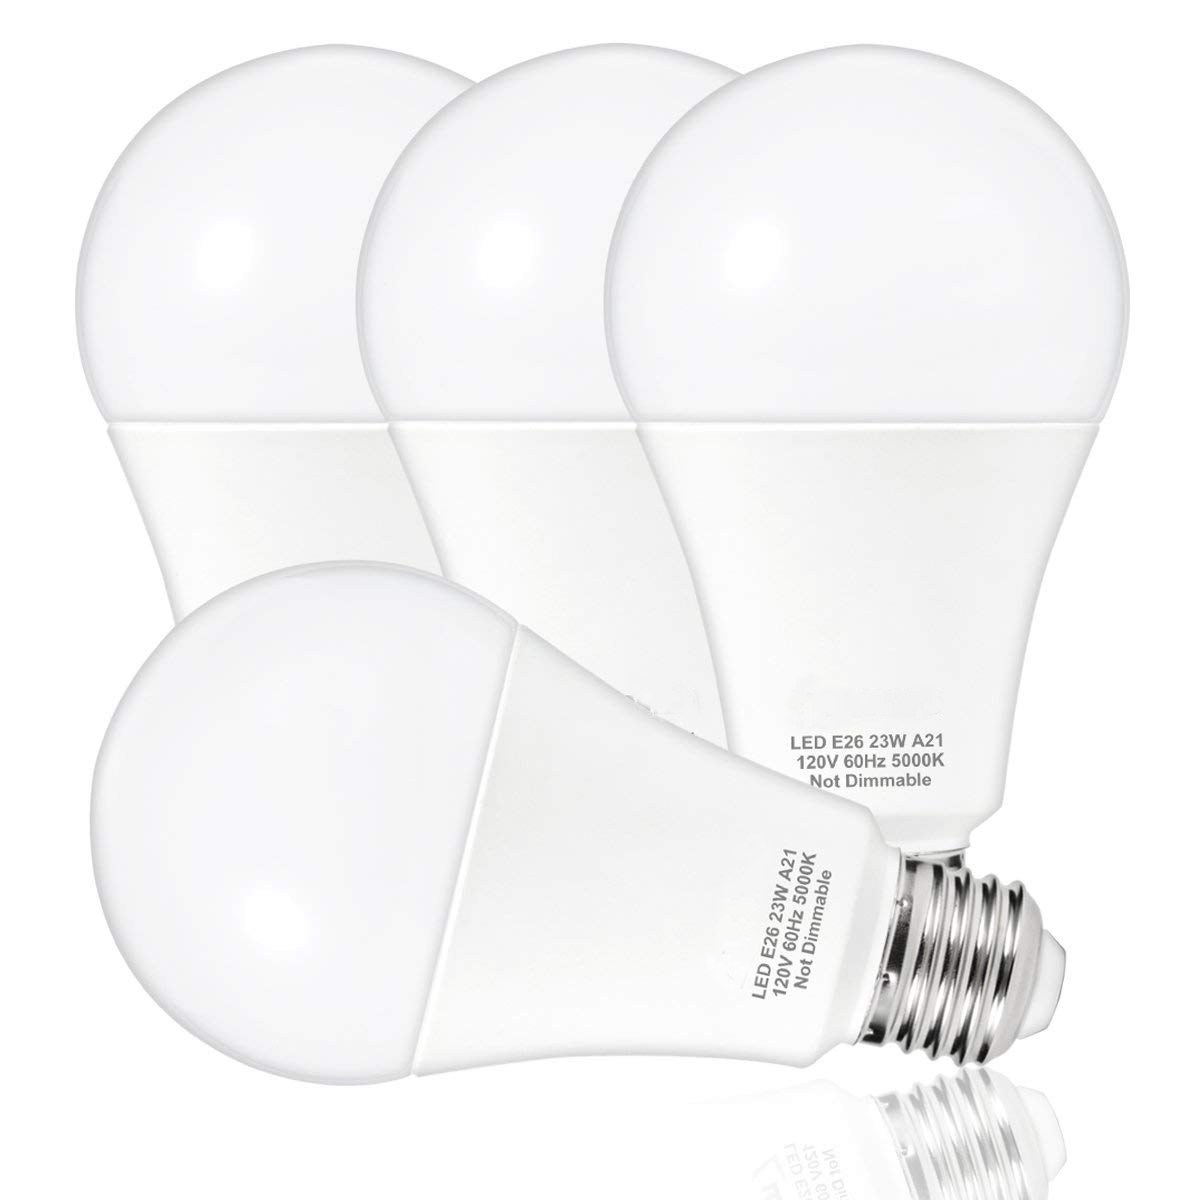 Aliexpress Buy Led Bulb 150w 200w Light Bulbs